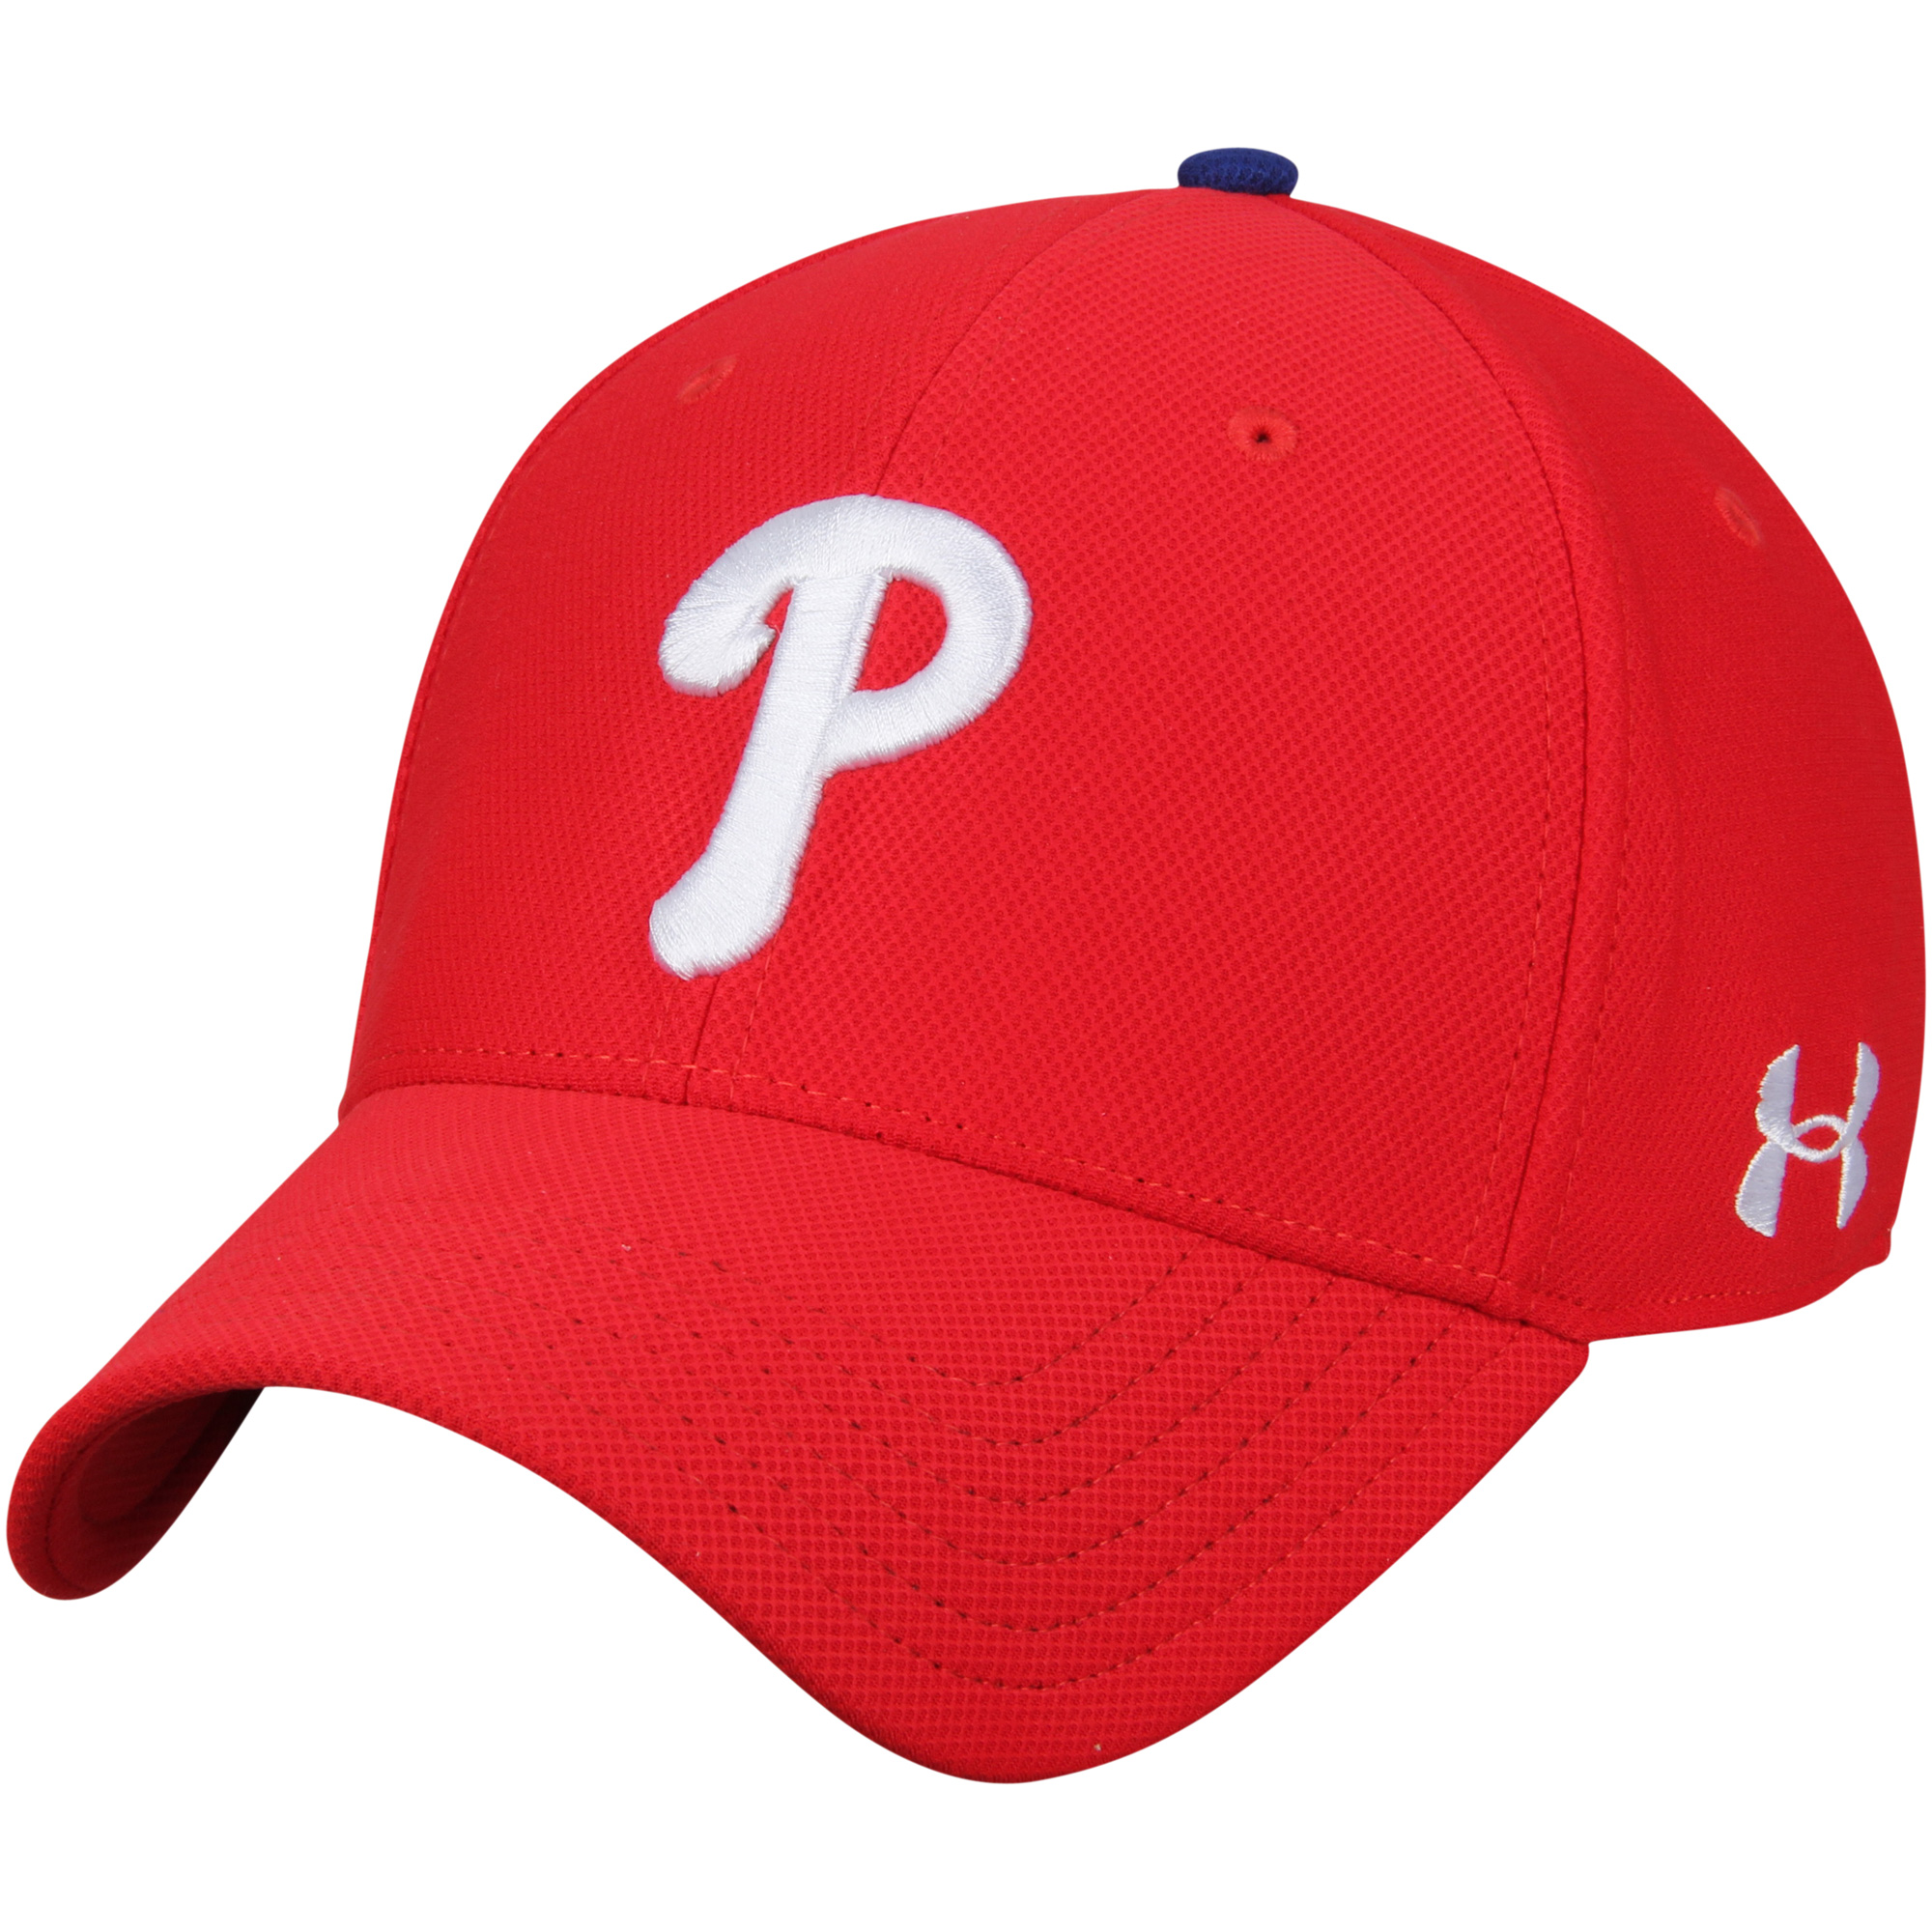 newest c3388 b7ca0 ... czech philadelphia phillies under armour blitzing performance  adjustable hat red osfa 18f61 ea438